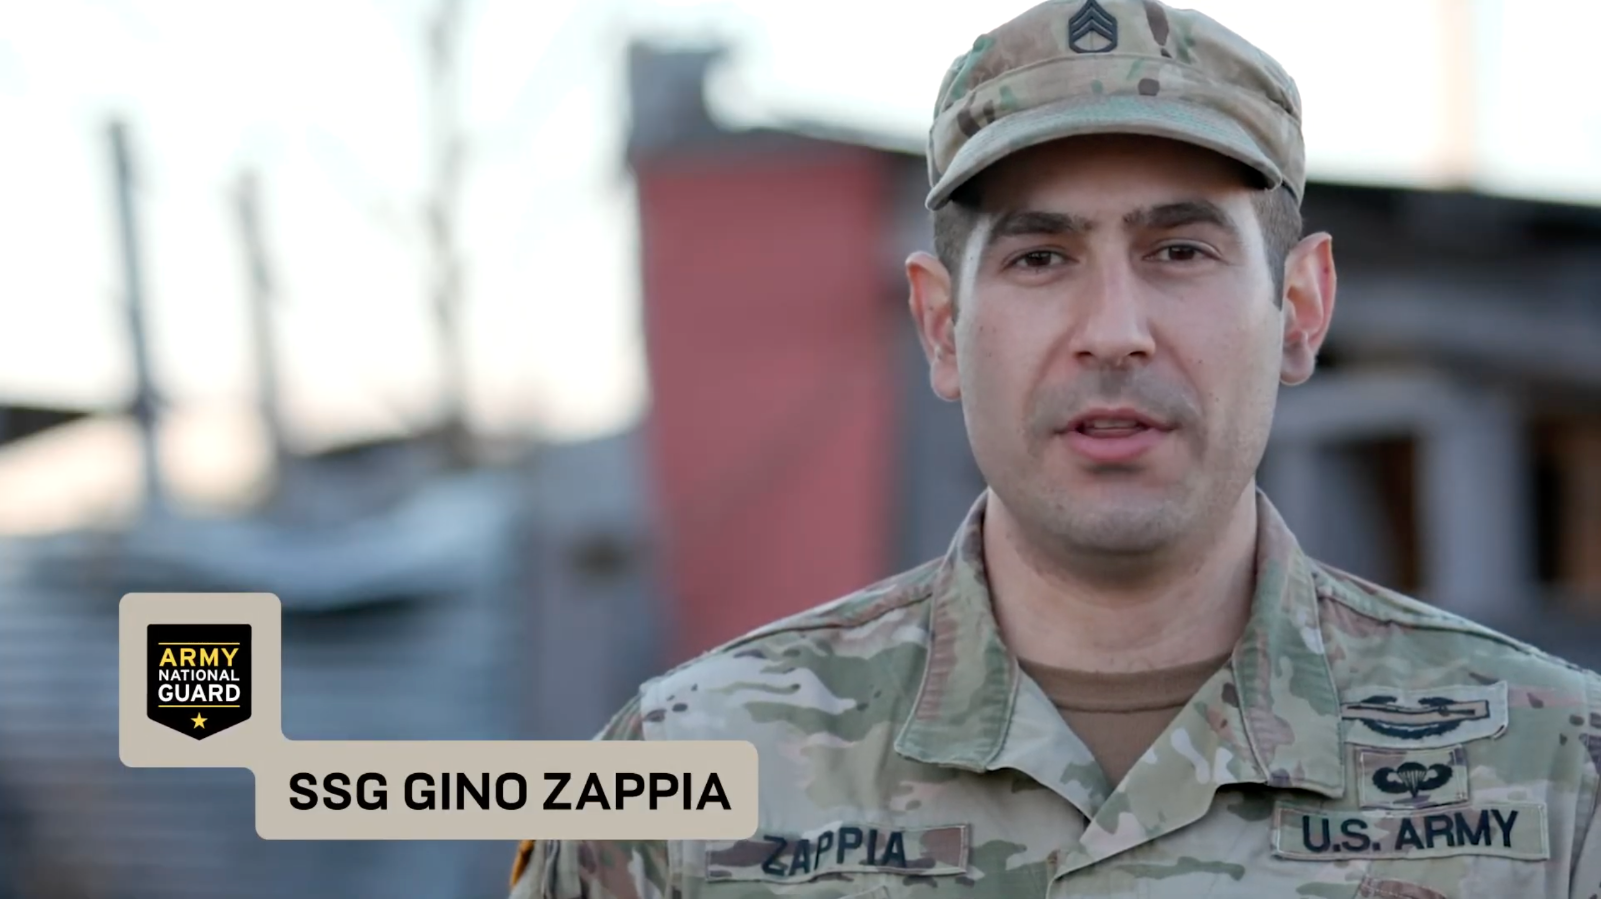 Behind the scenes of an Army National Guard photo shoot with SSG Gino Zappia